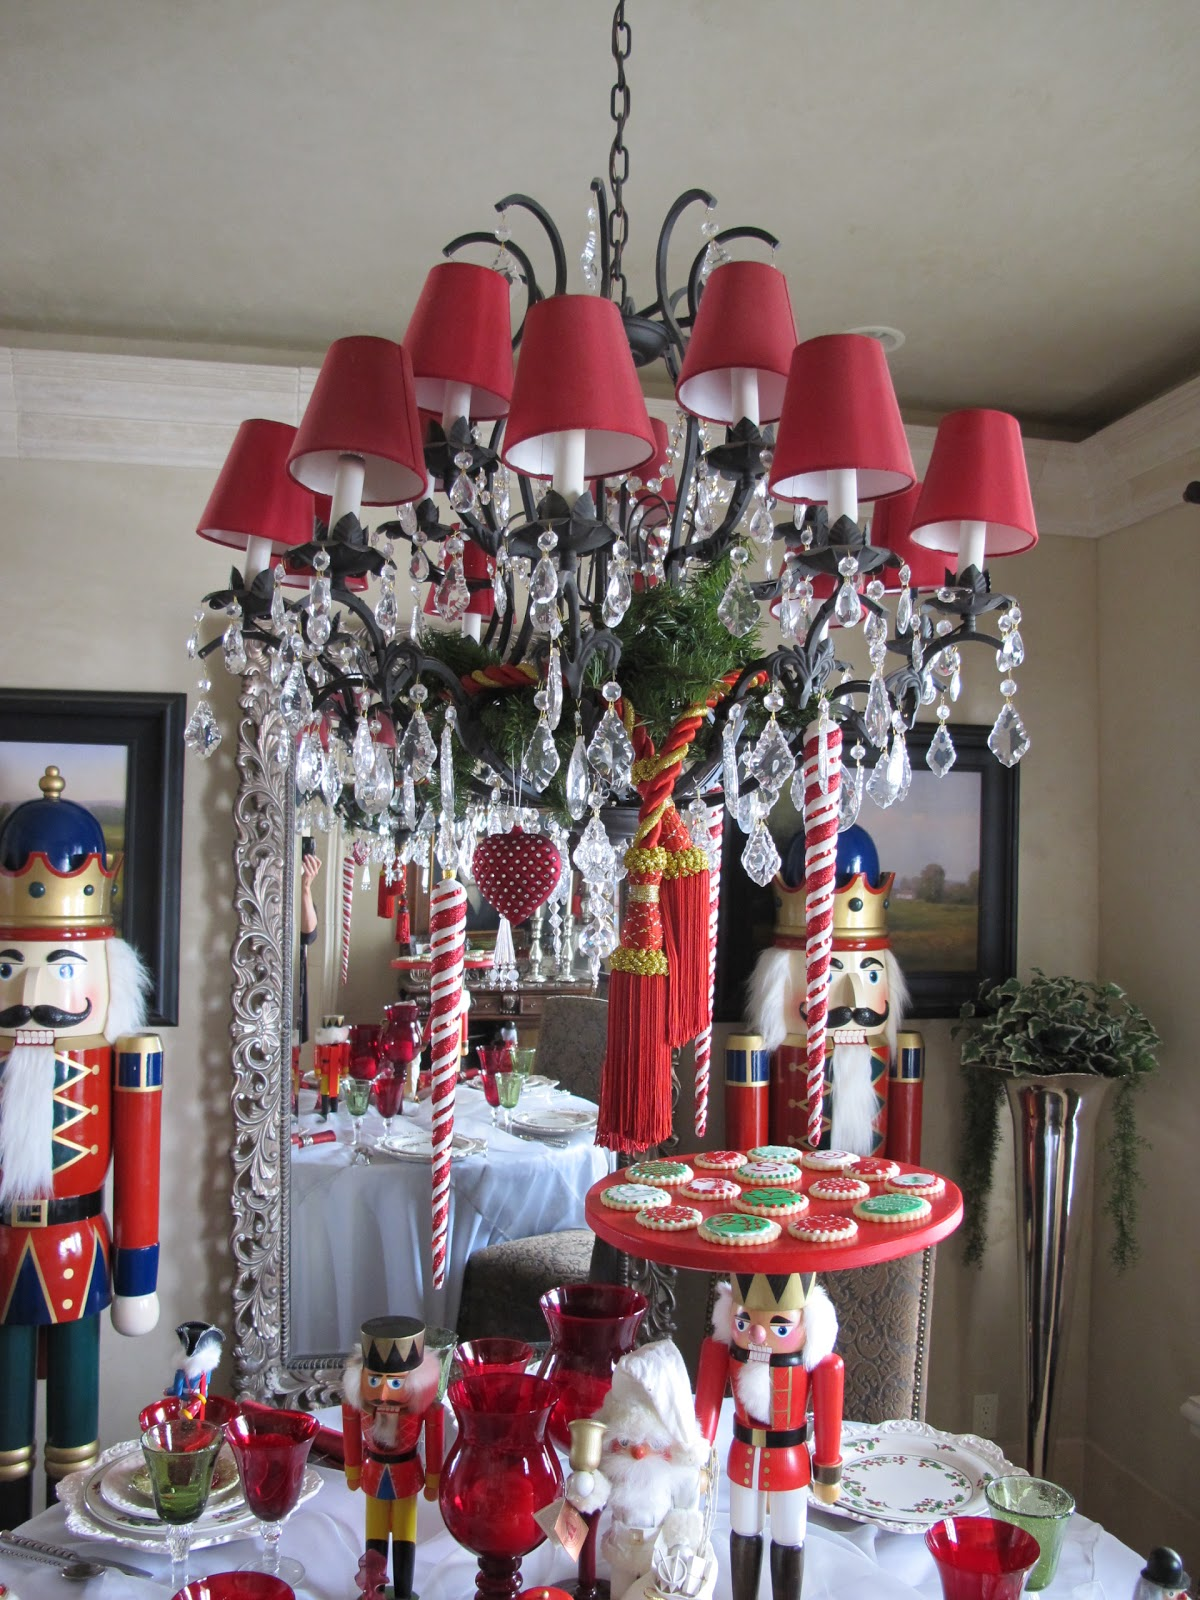 Ceiling fan dressed for christmas on pinterest ceiling for American decoration ideas